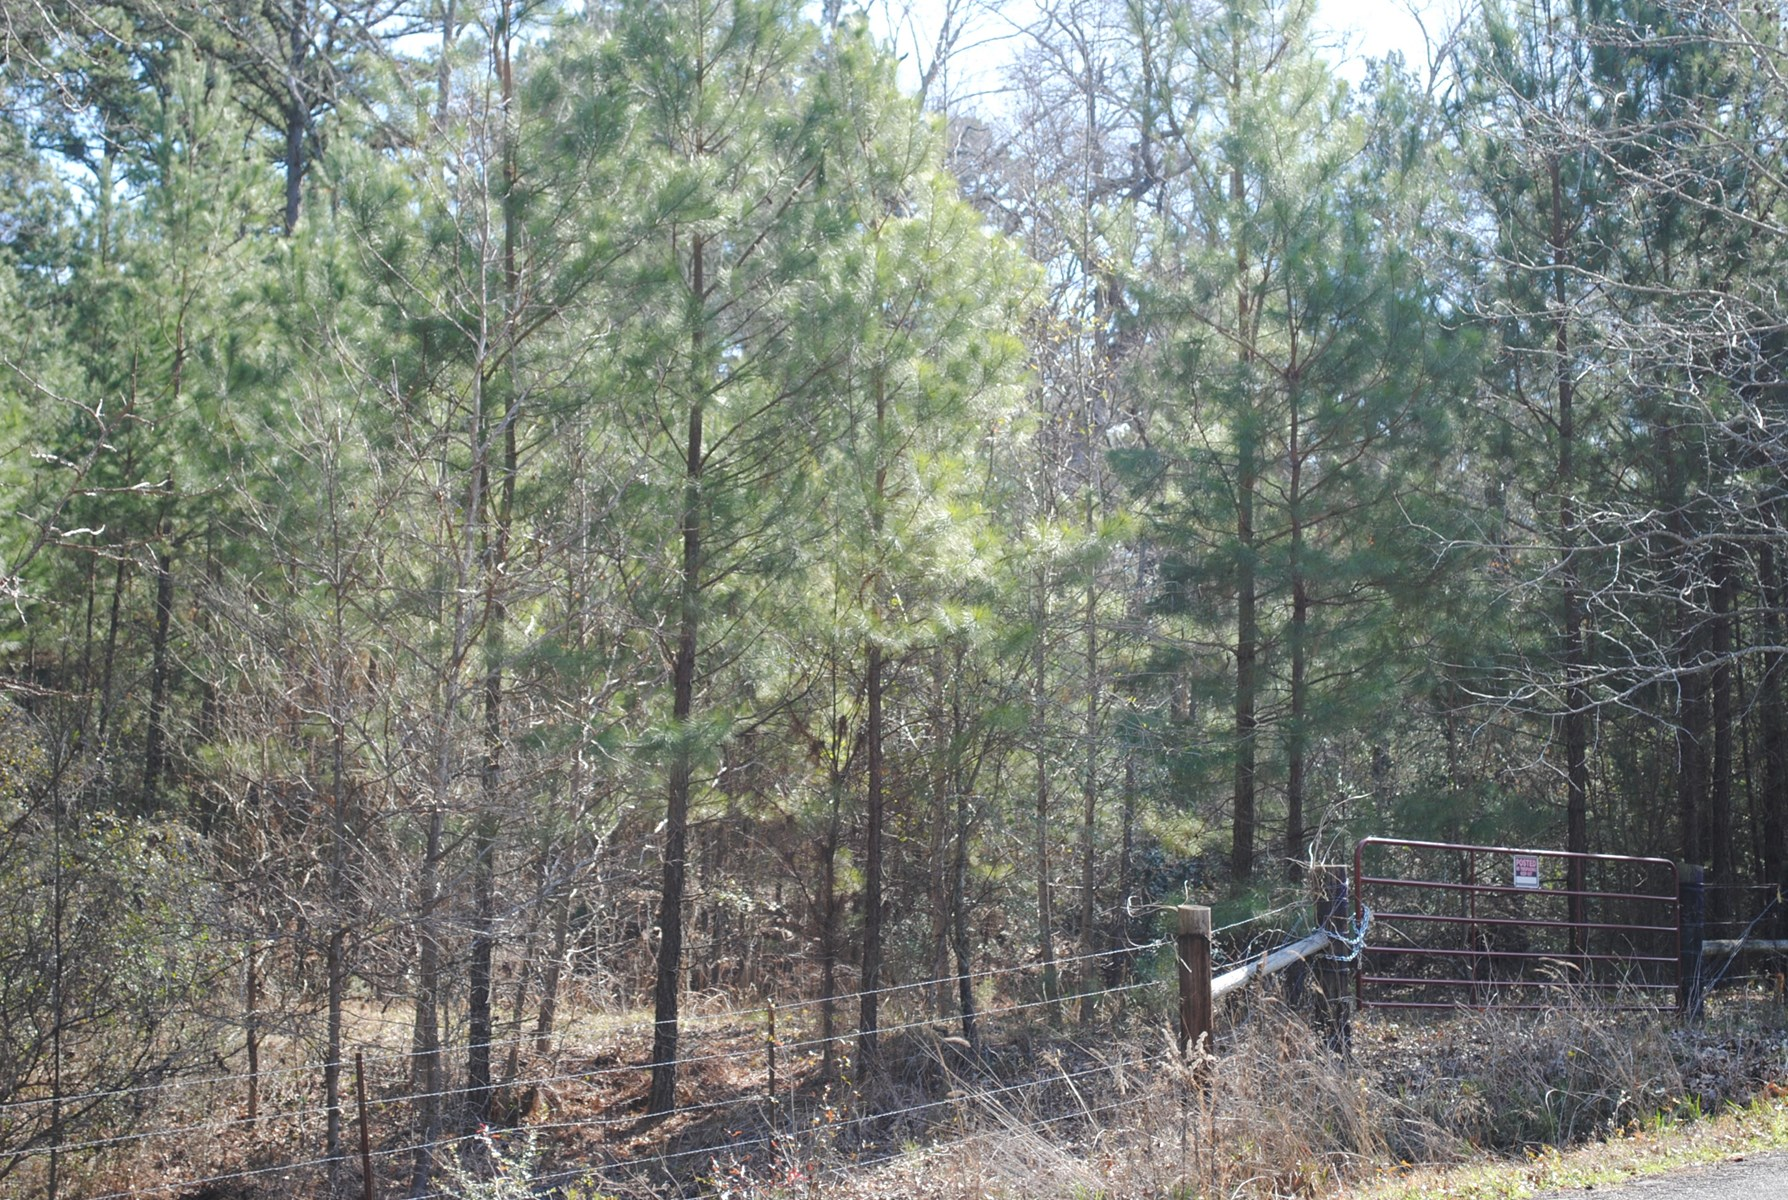 Rural Land/Acreage For Sale, Tyler Smith County